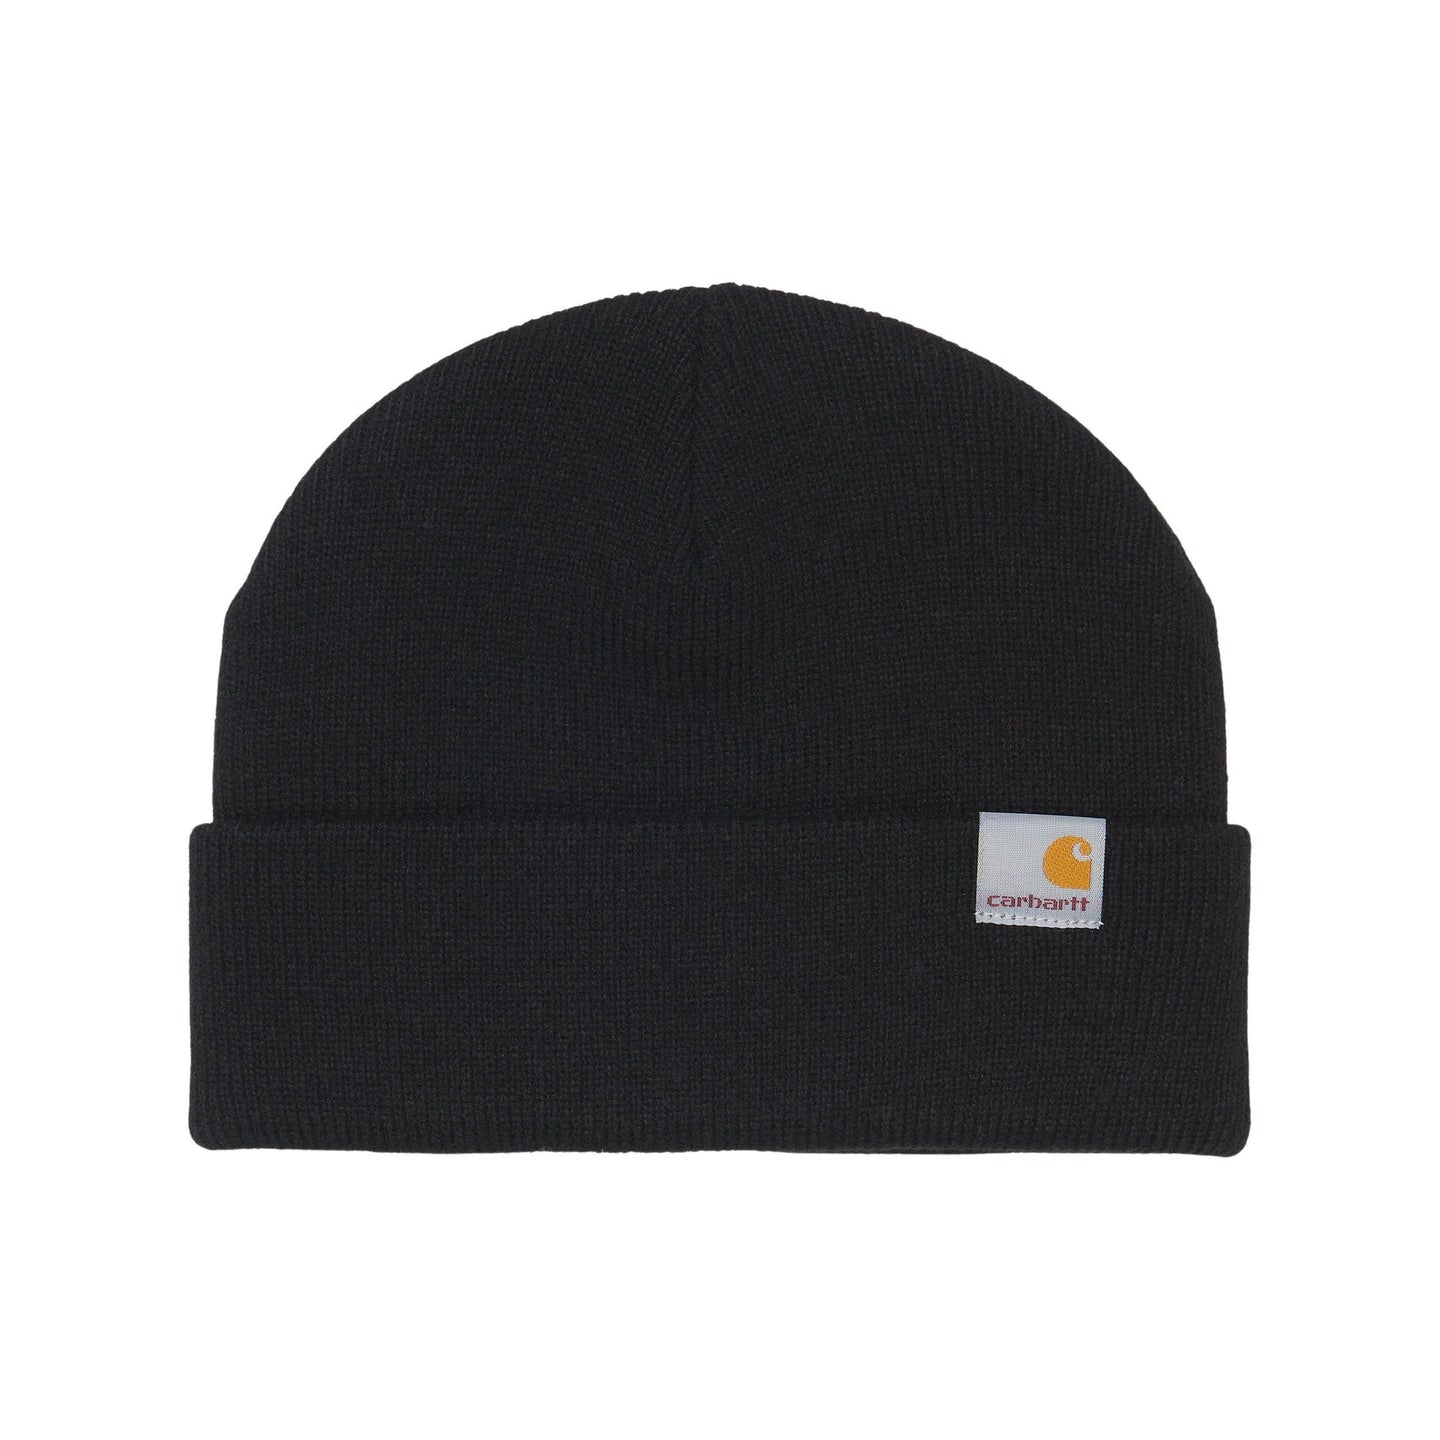 Carhartt WIP Stratus Hat Low - Goldjunge-Store